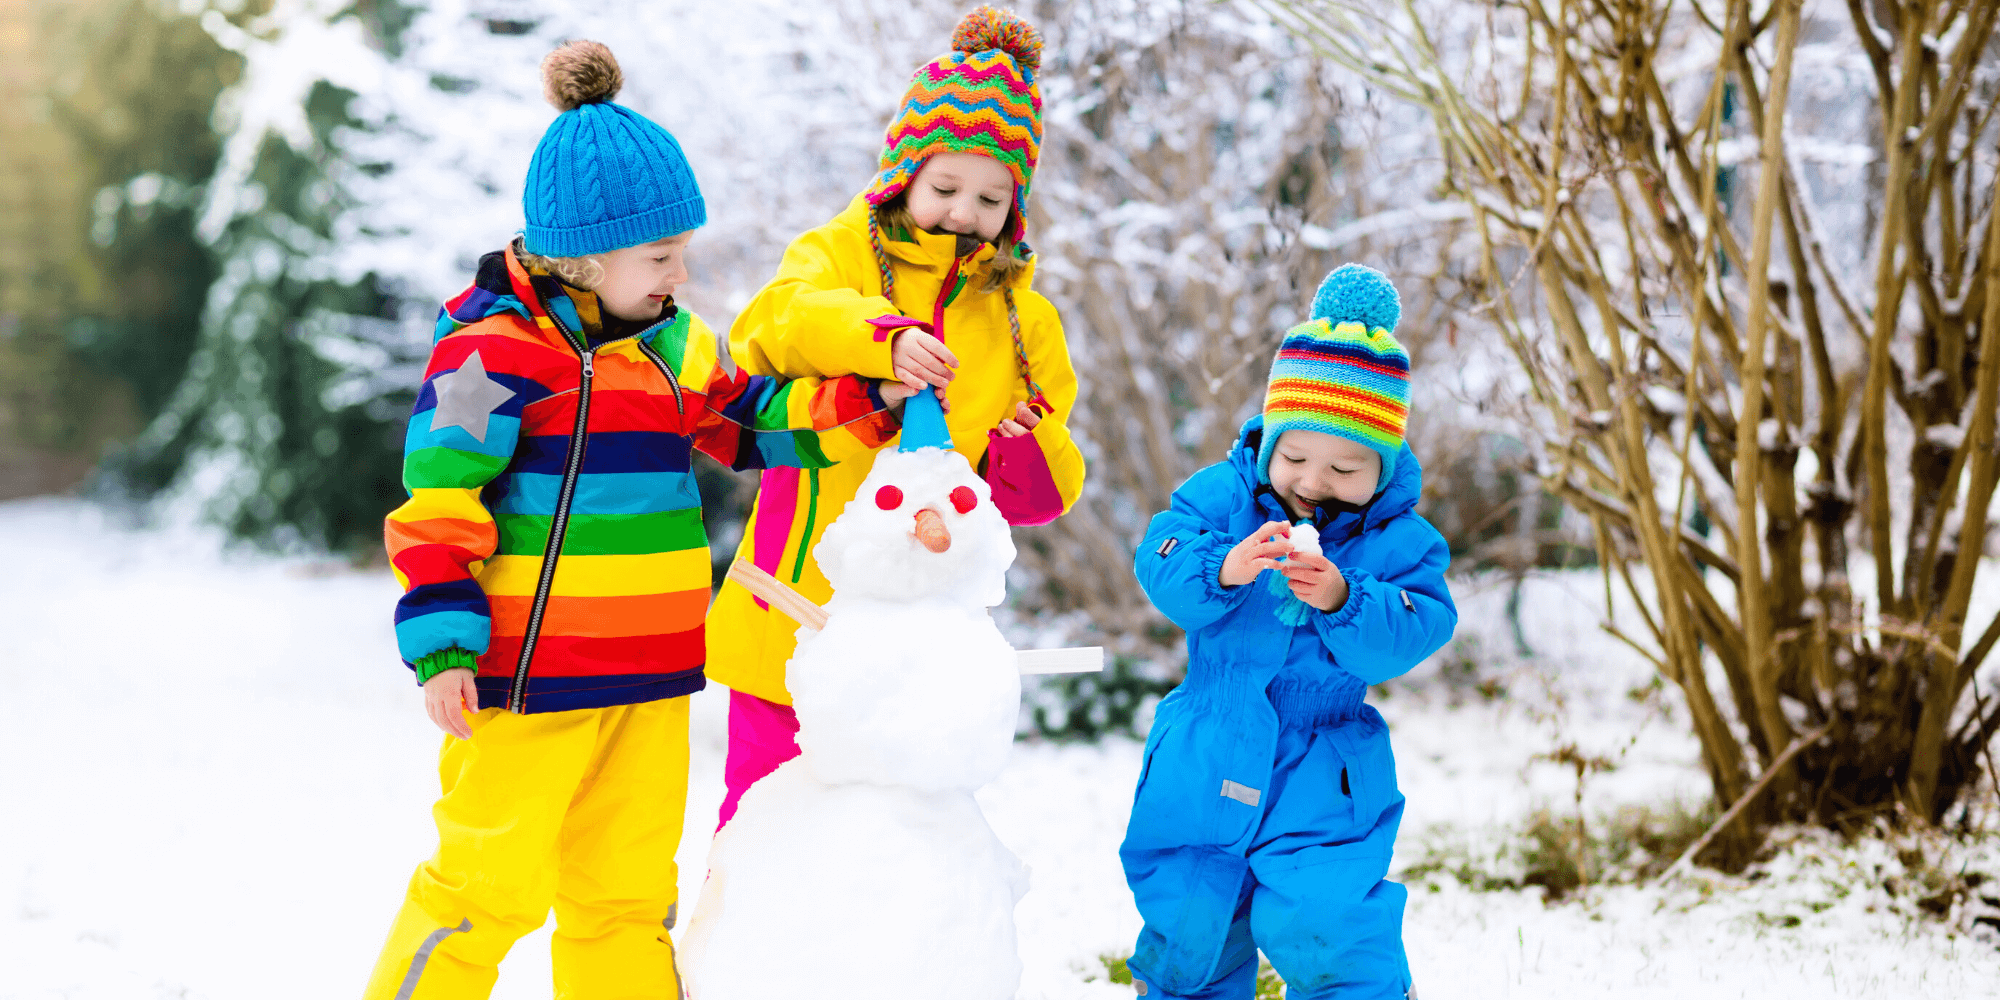 3 little children building a snowman